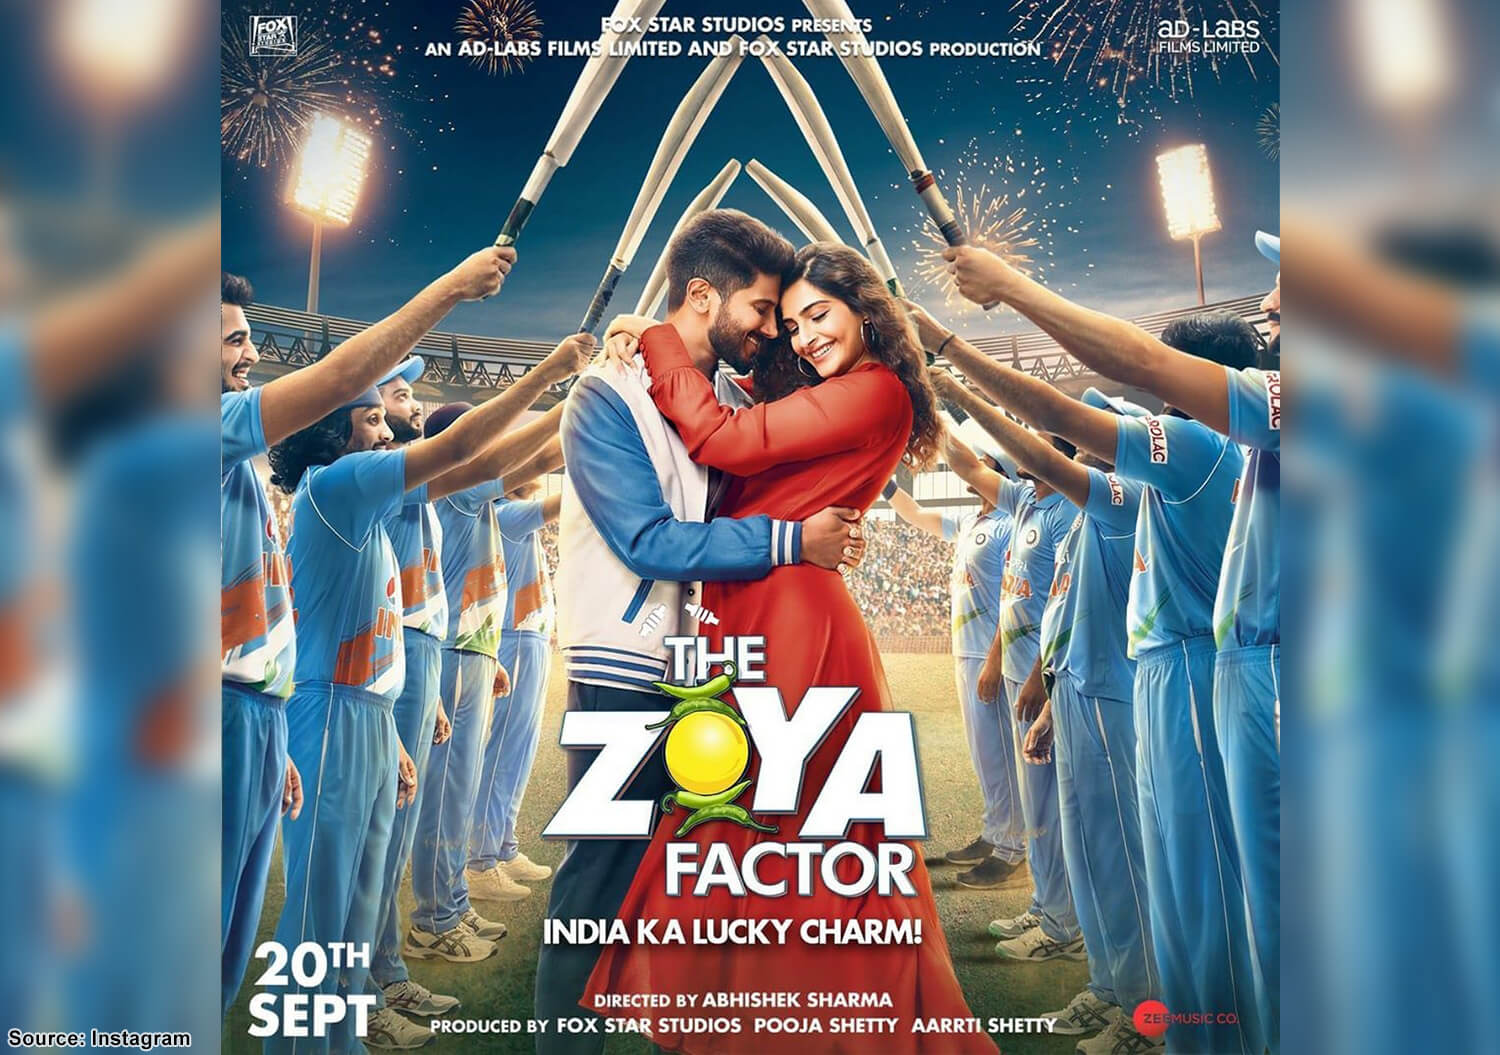 Meet Zoya 'Mata' spreading luck in 'The Zoya Factor' trailer